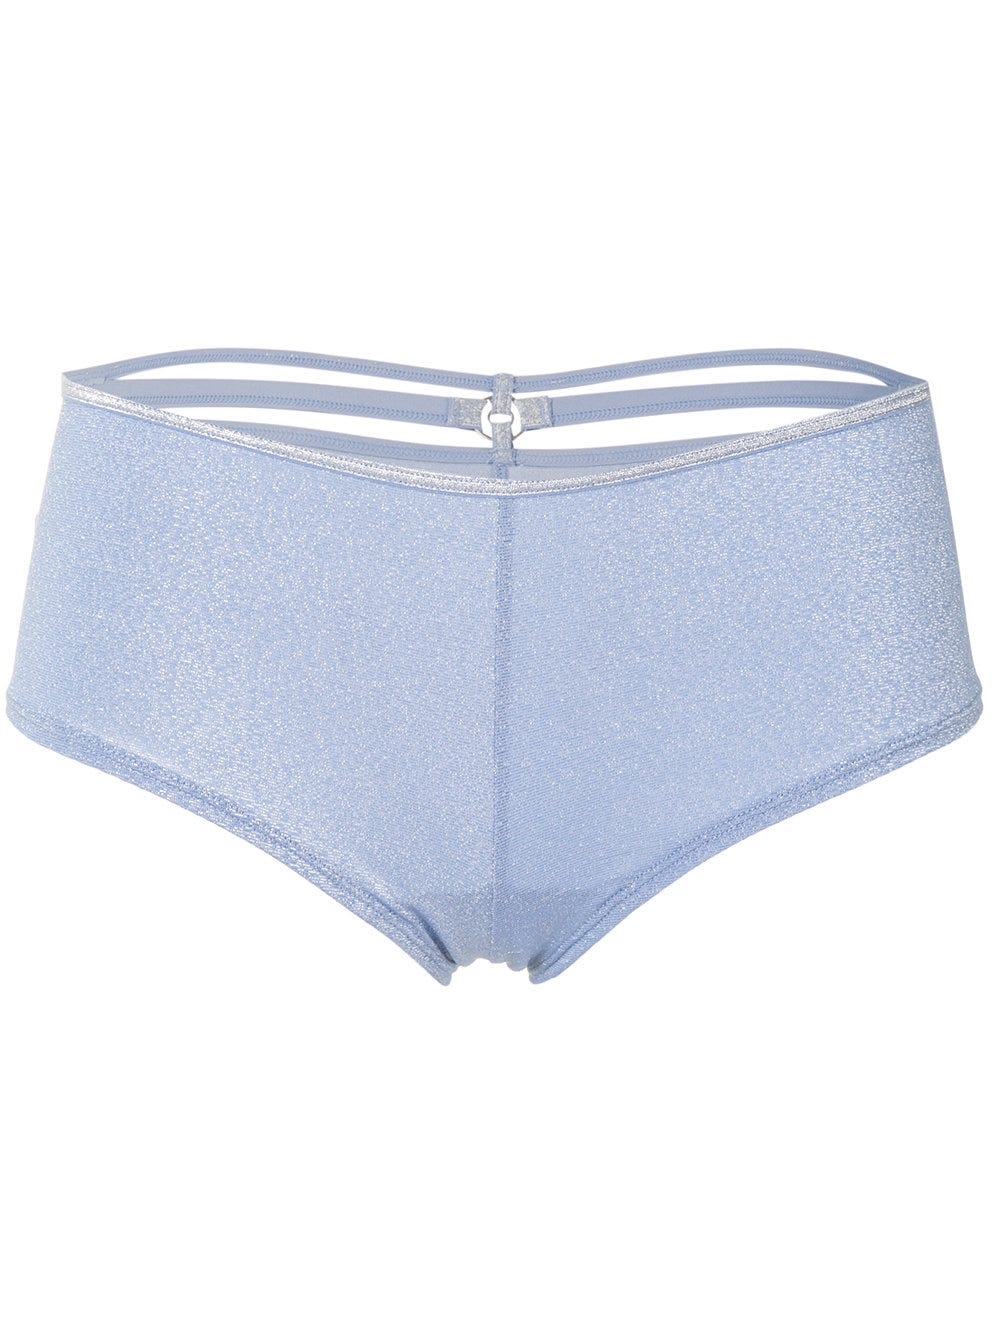 2019 year lifestyle- How to your make own seamless underwear